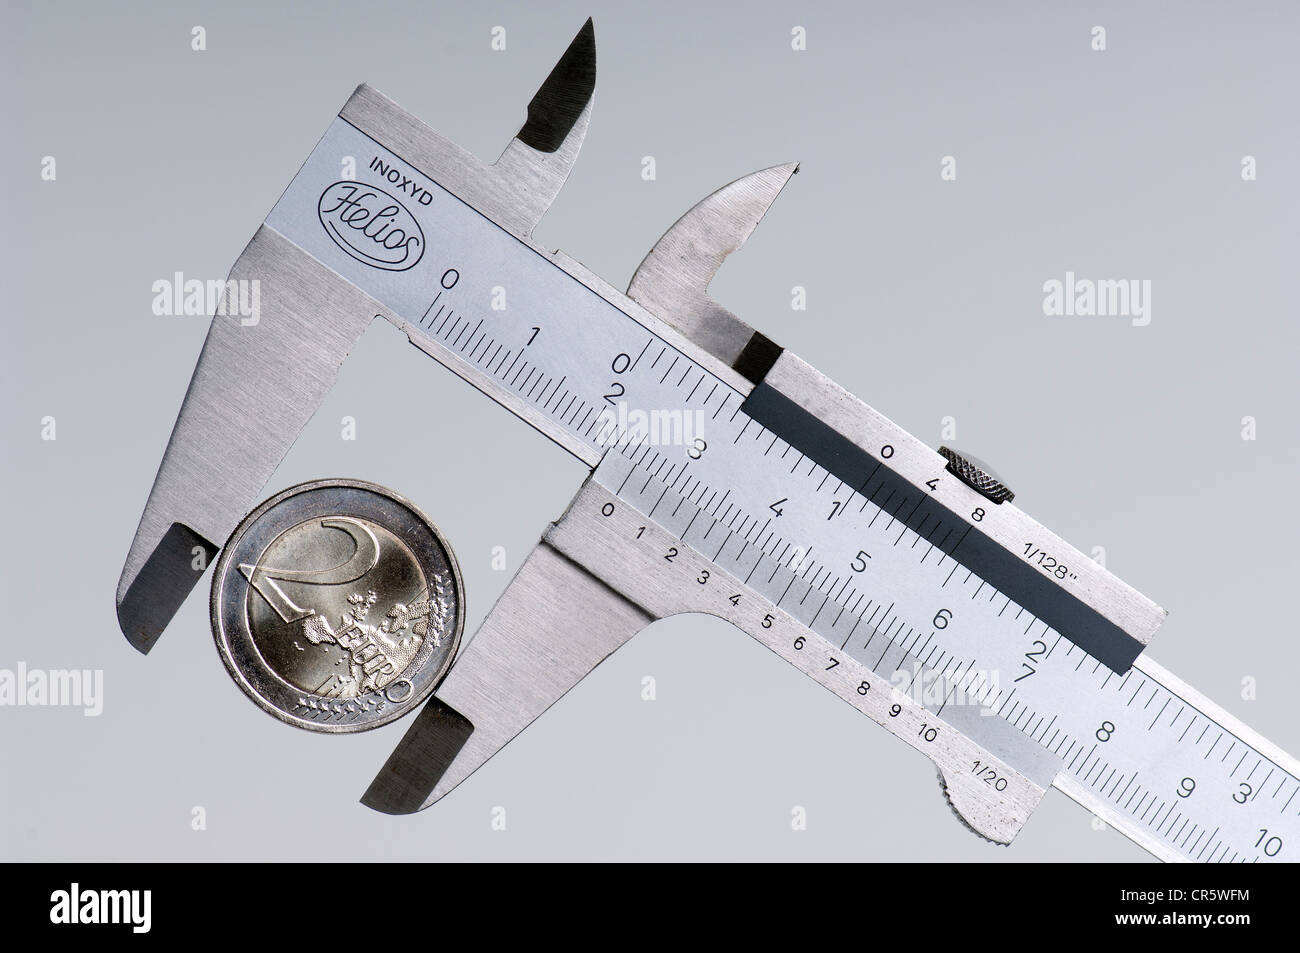 Two-euro coin in calliper, symbolic image for the euro under pressure - Stock Image